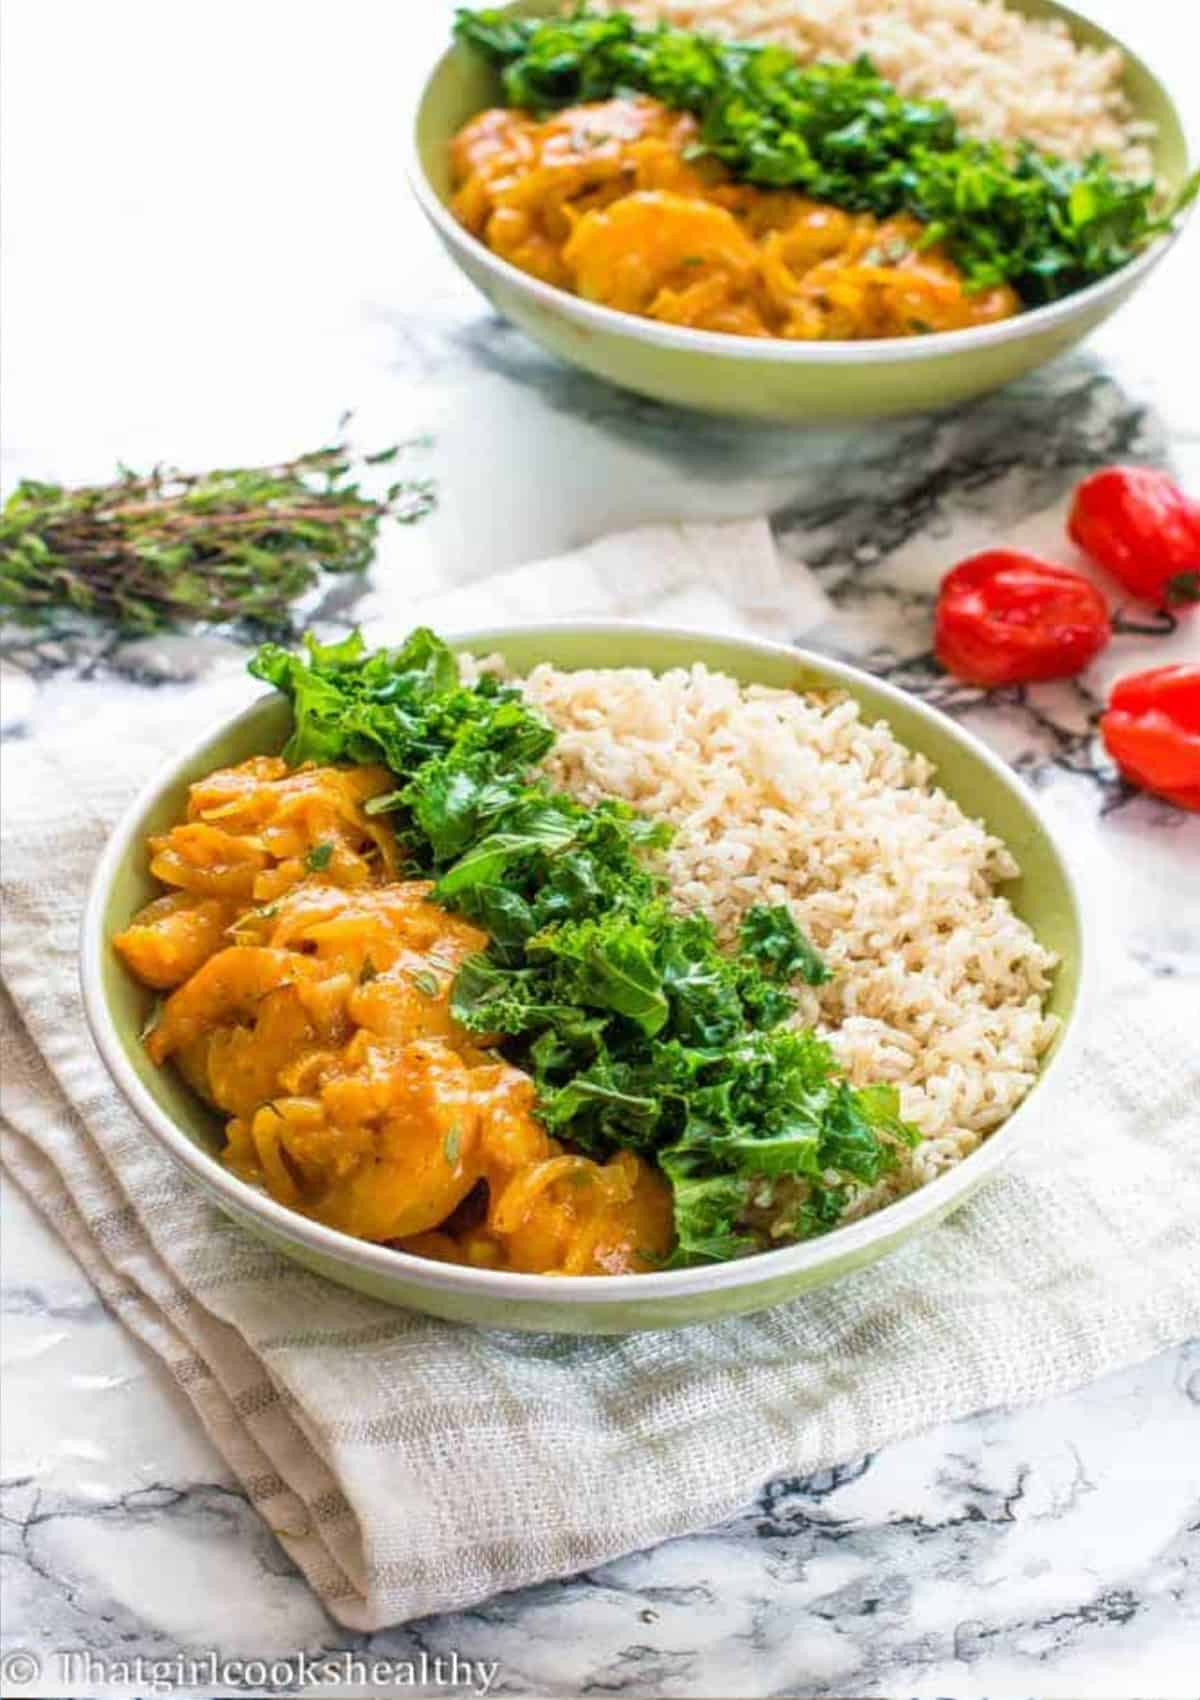 shrimp, kale and rice in a bowl